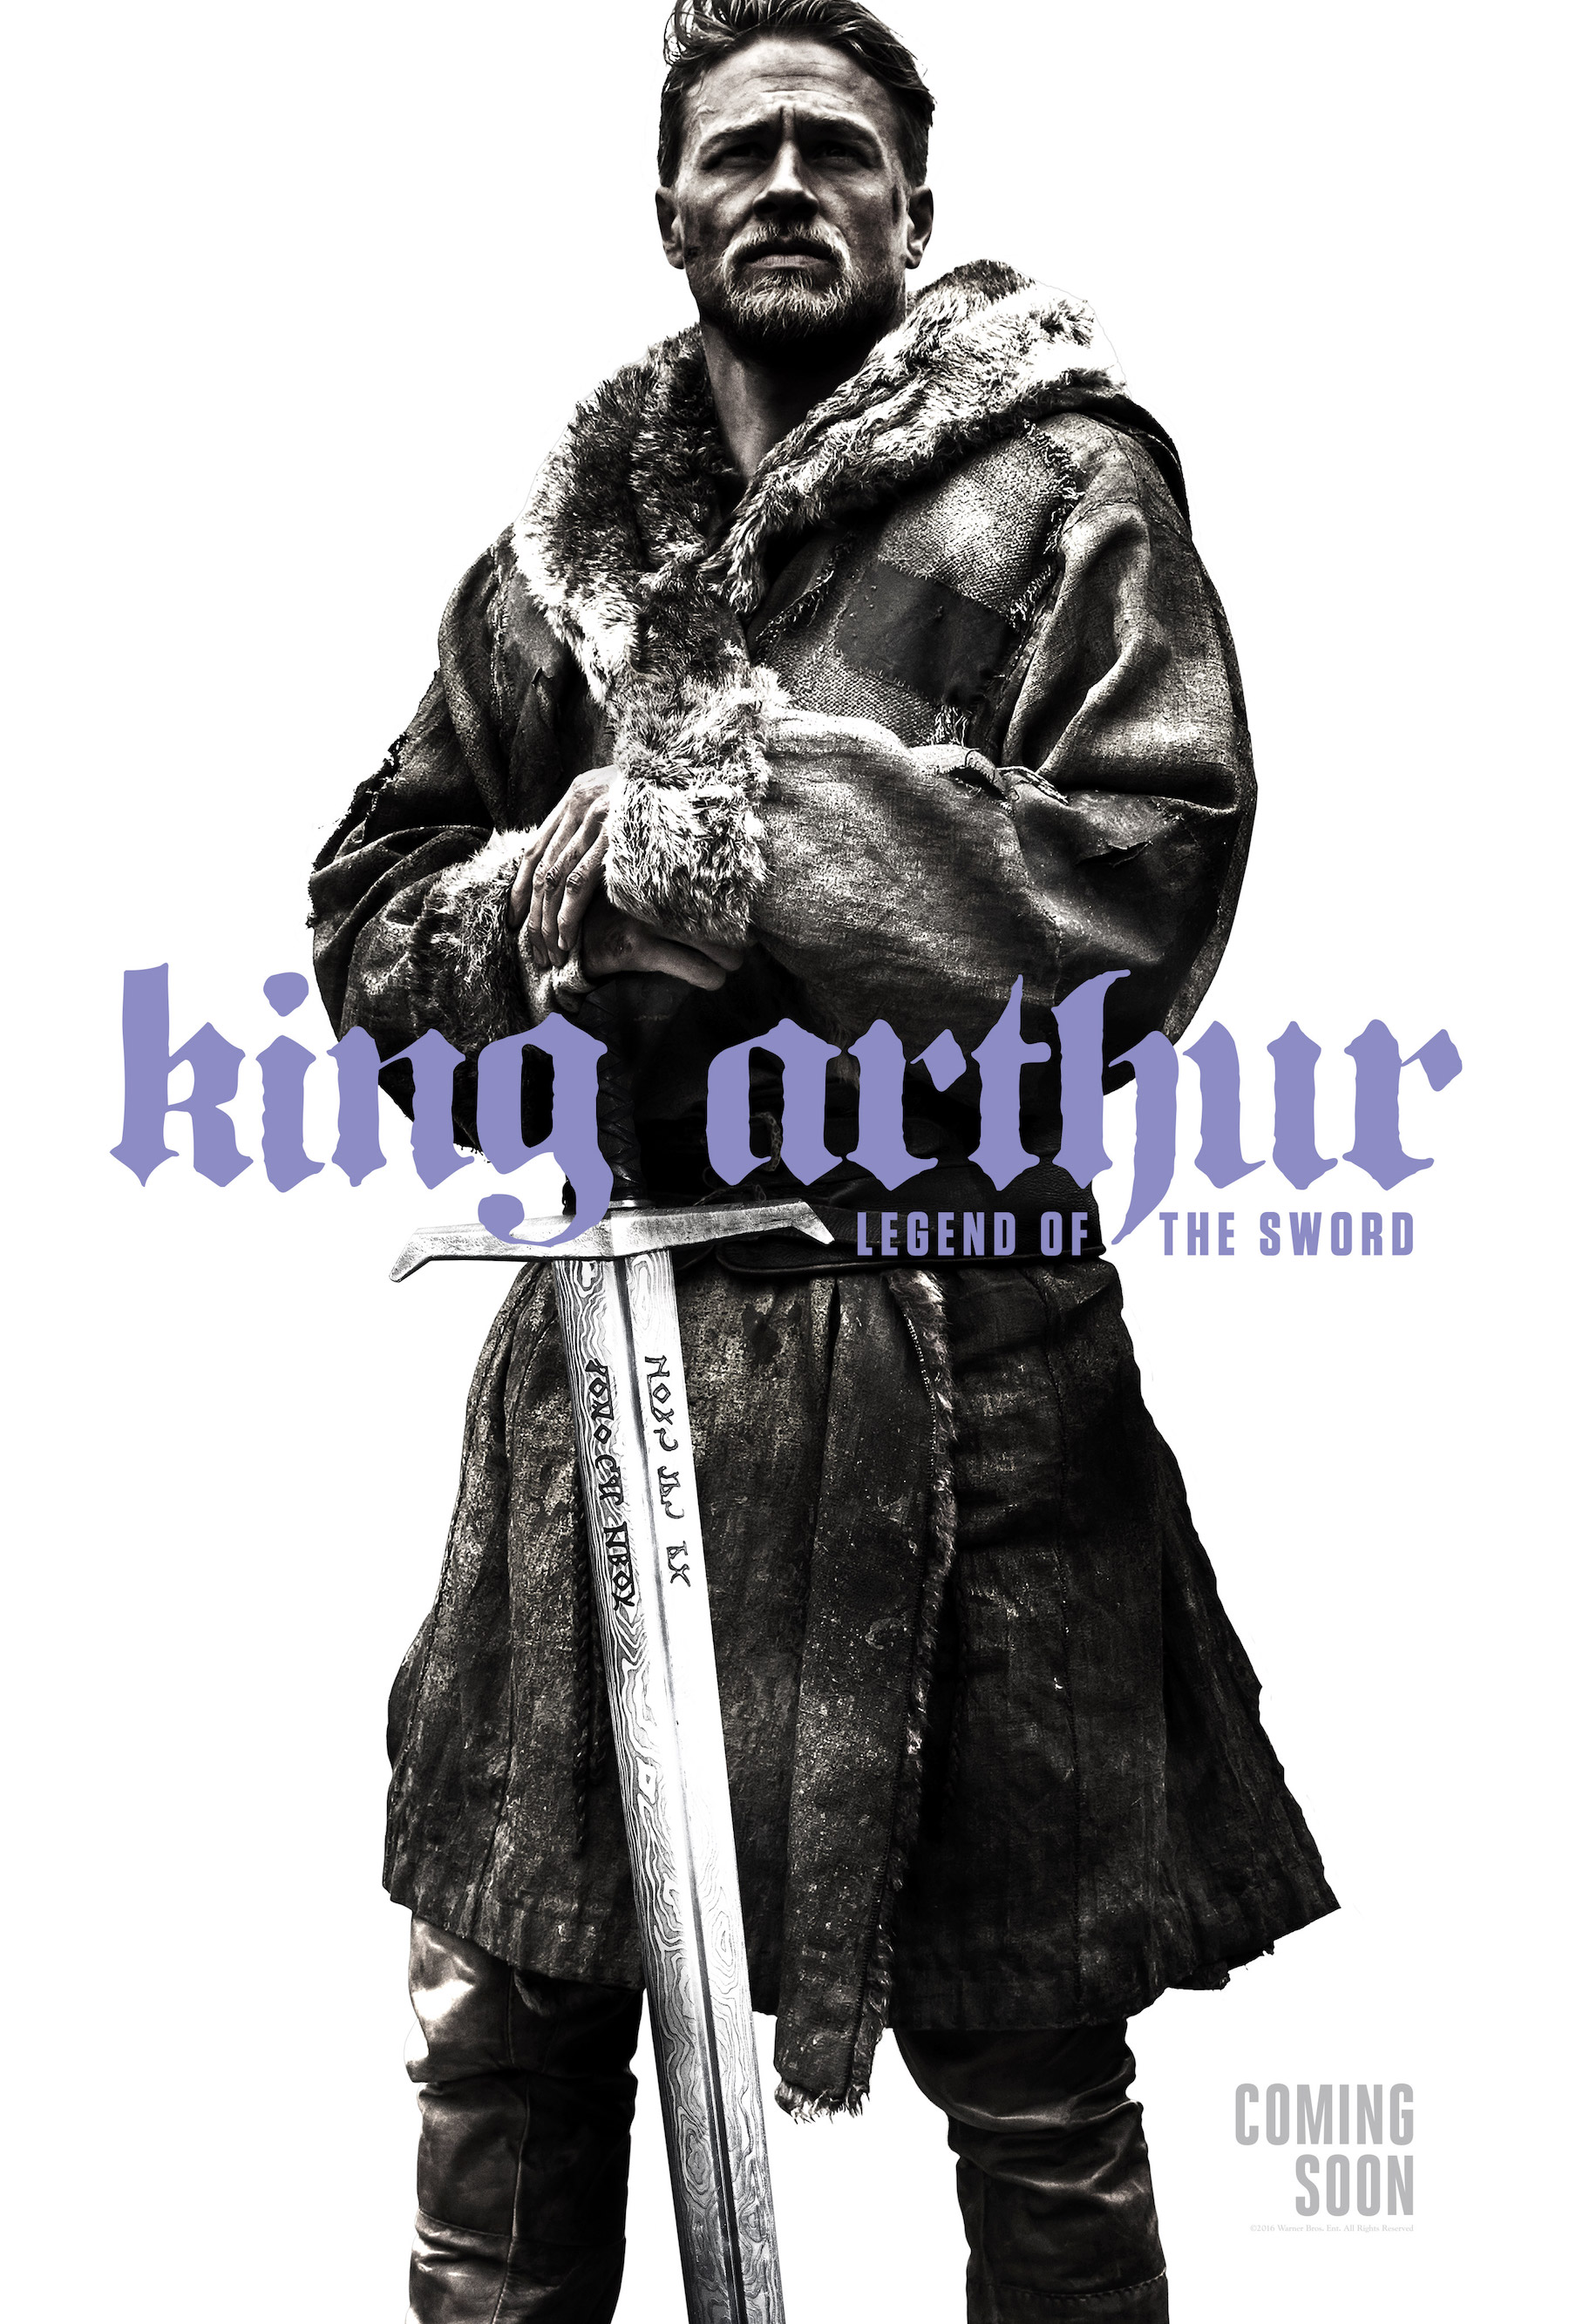 King Arthur: Legend of the Sword teaser poster with Charlie Hunnam